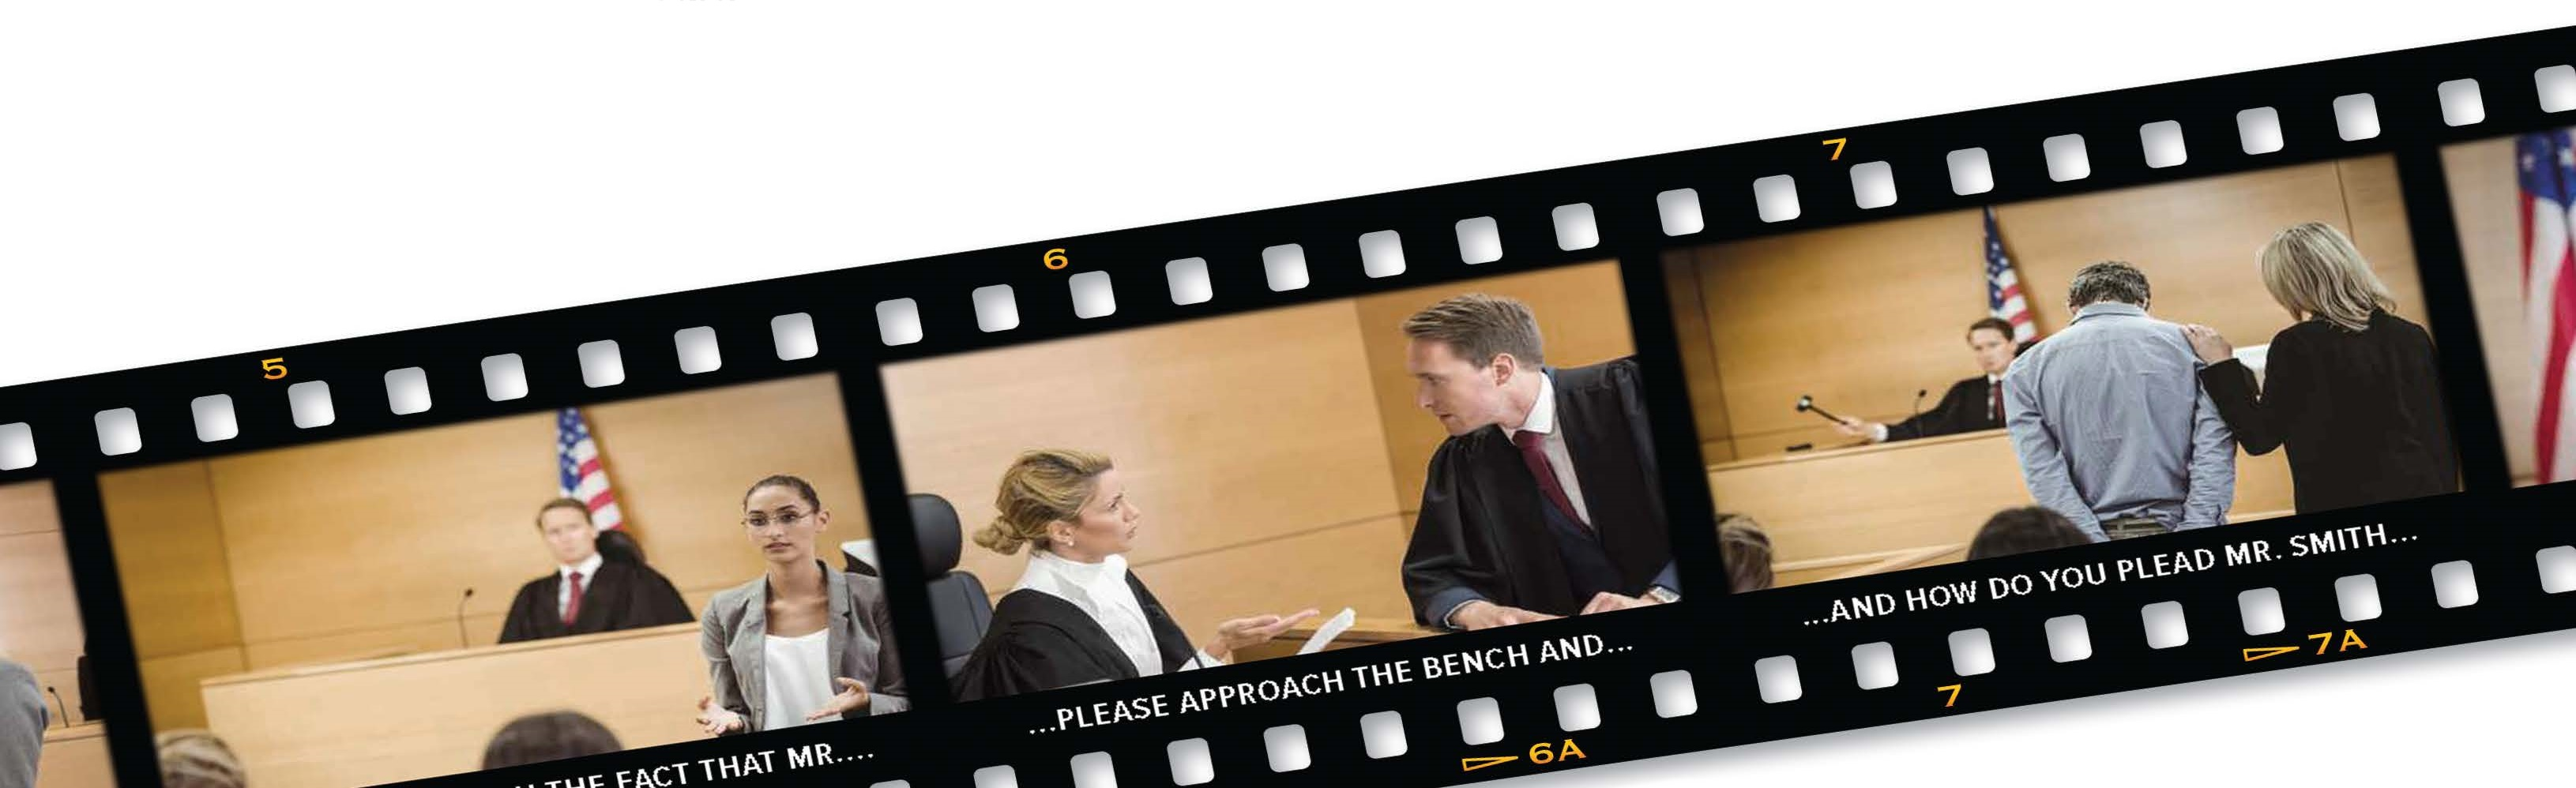 Film strip of court scenes with excerpts from the transcript at the bottom as captions.